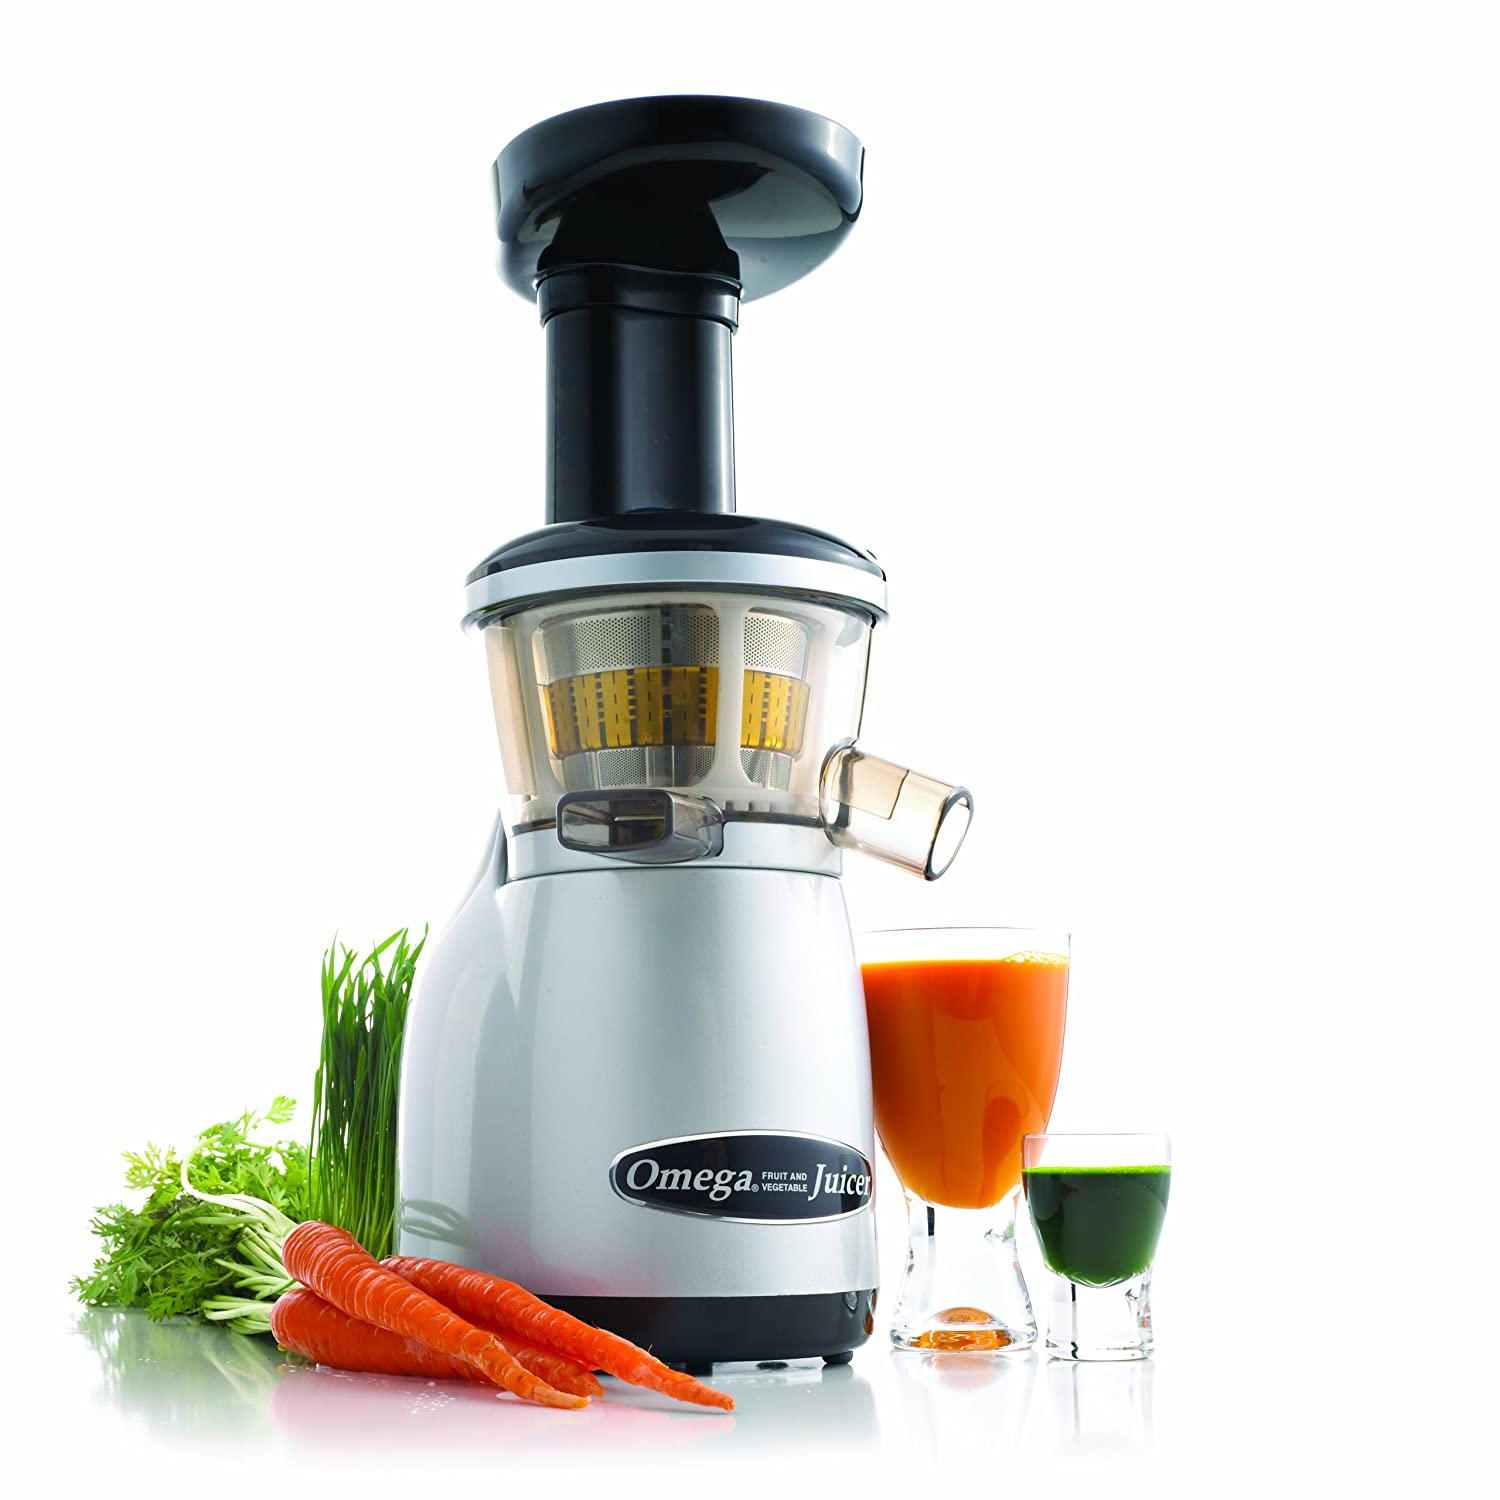 Omega Juicers FBA Omega VRT350 Heavy Duty Low Speed Masticating Juicer Silver